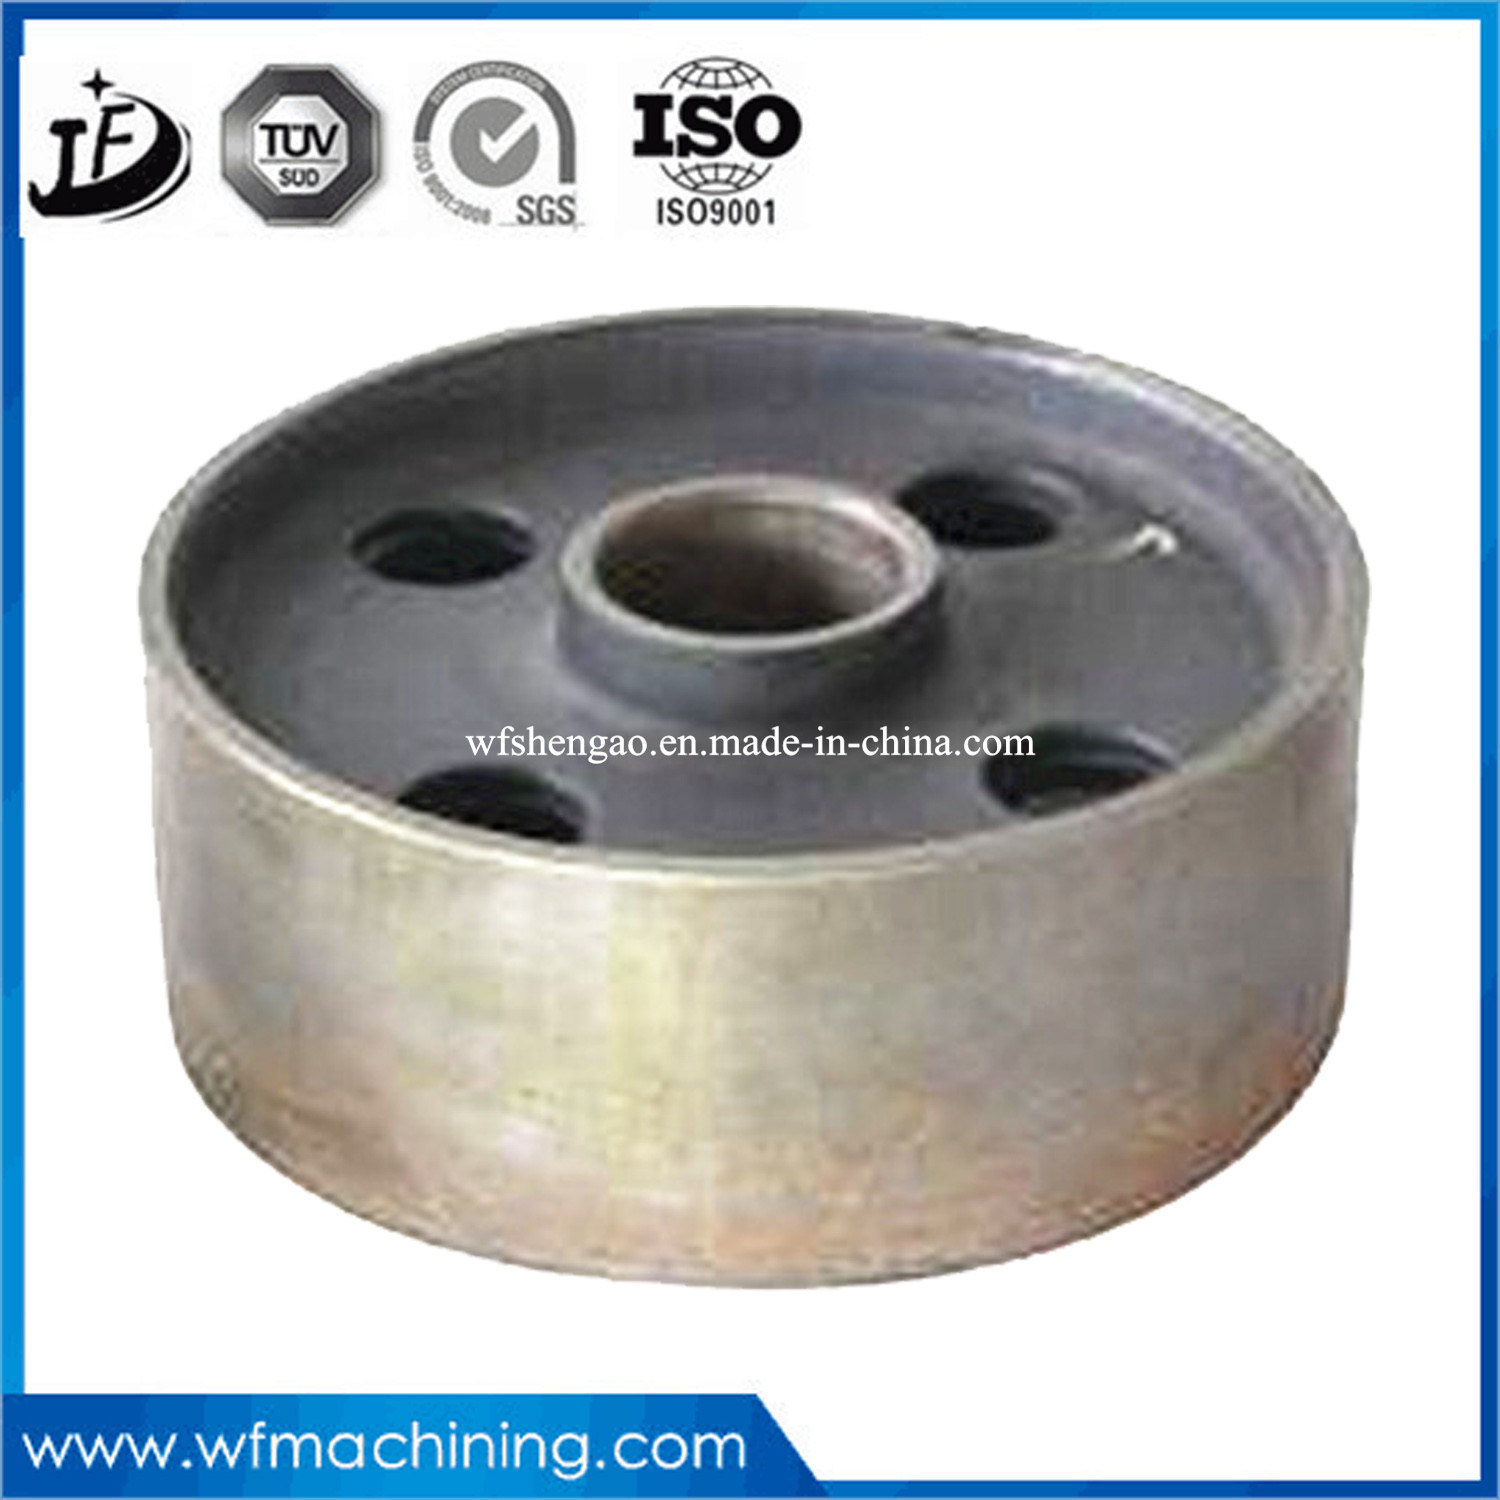 ISO OEM Sand Casting Gg25 Iron Parts with Competitive Price